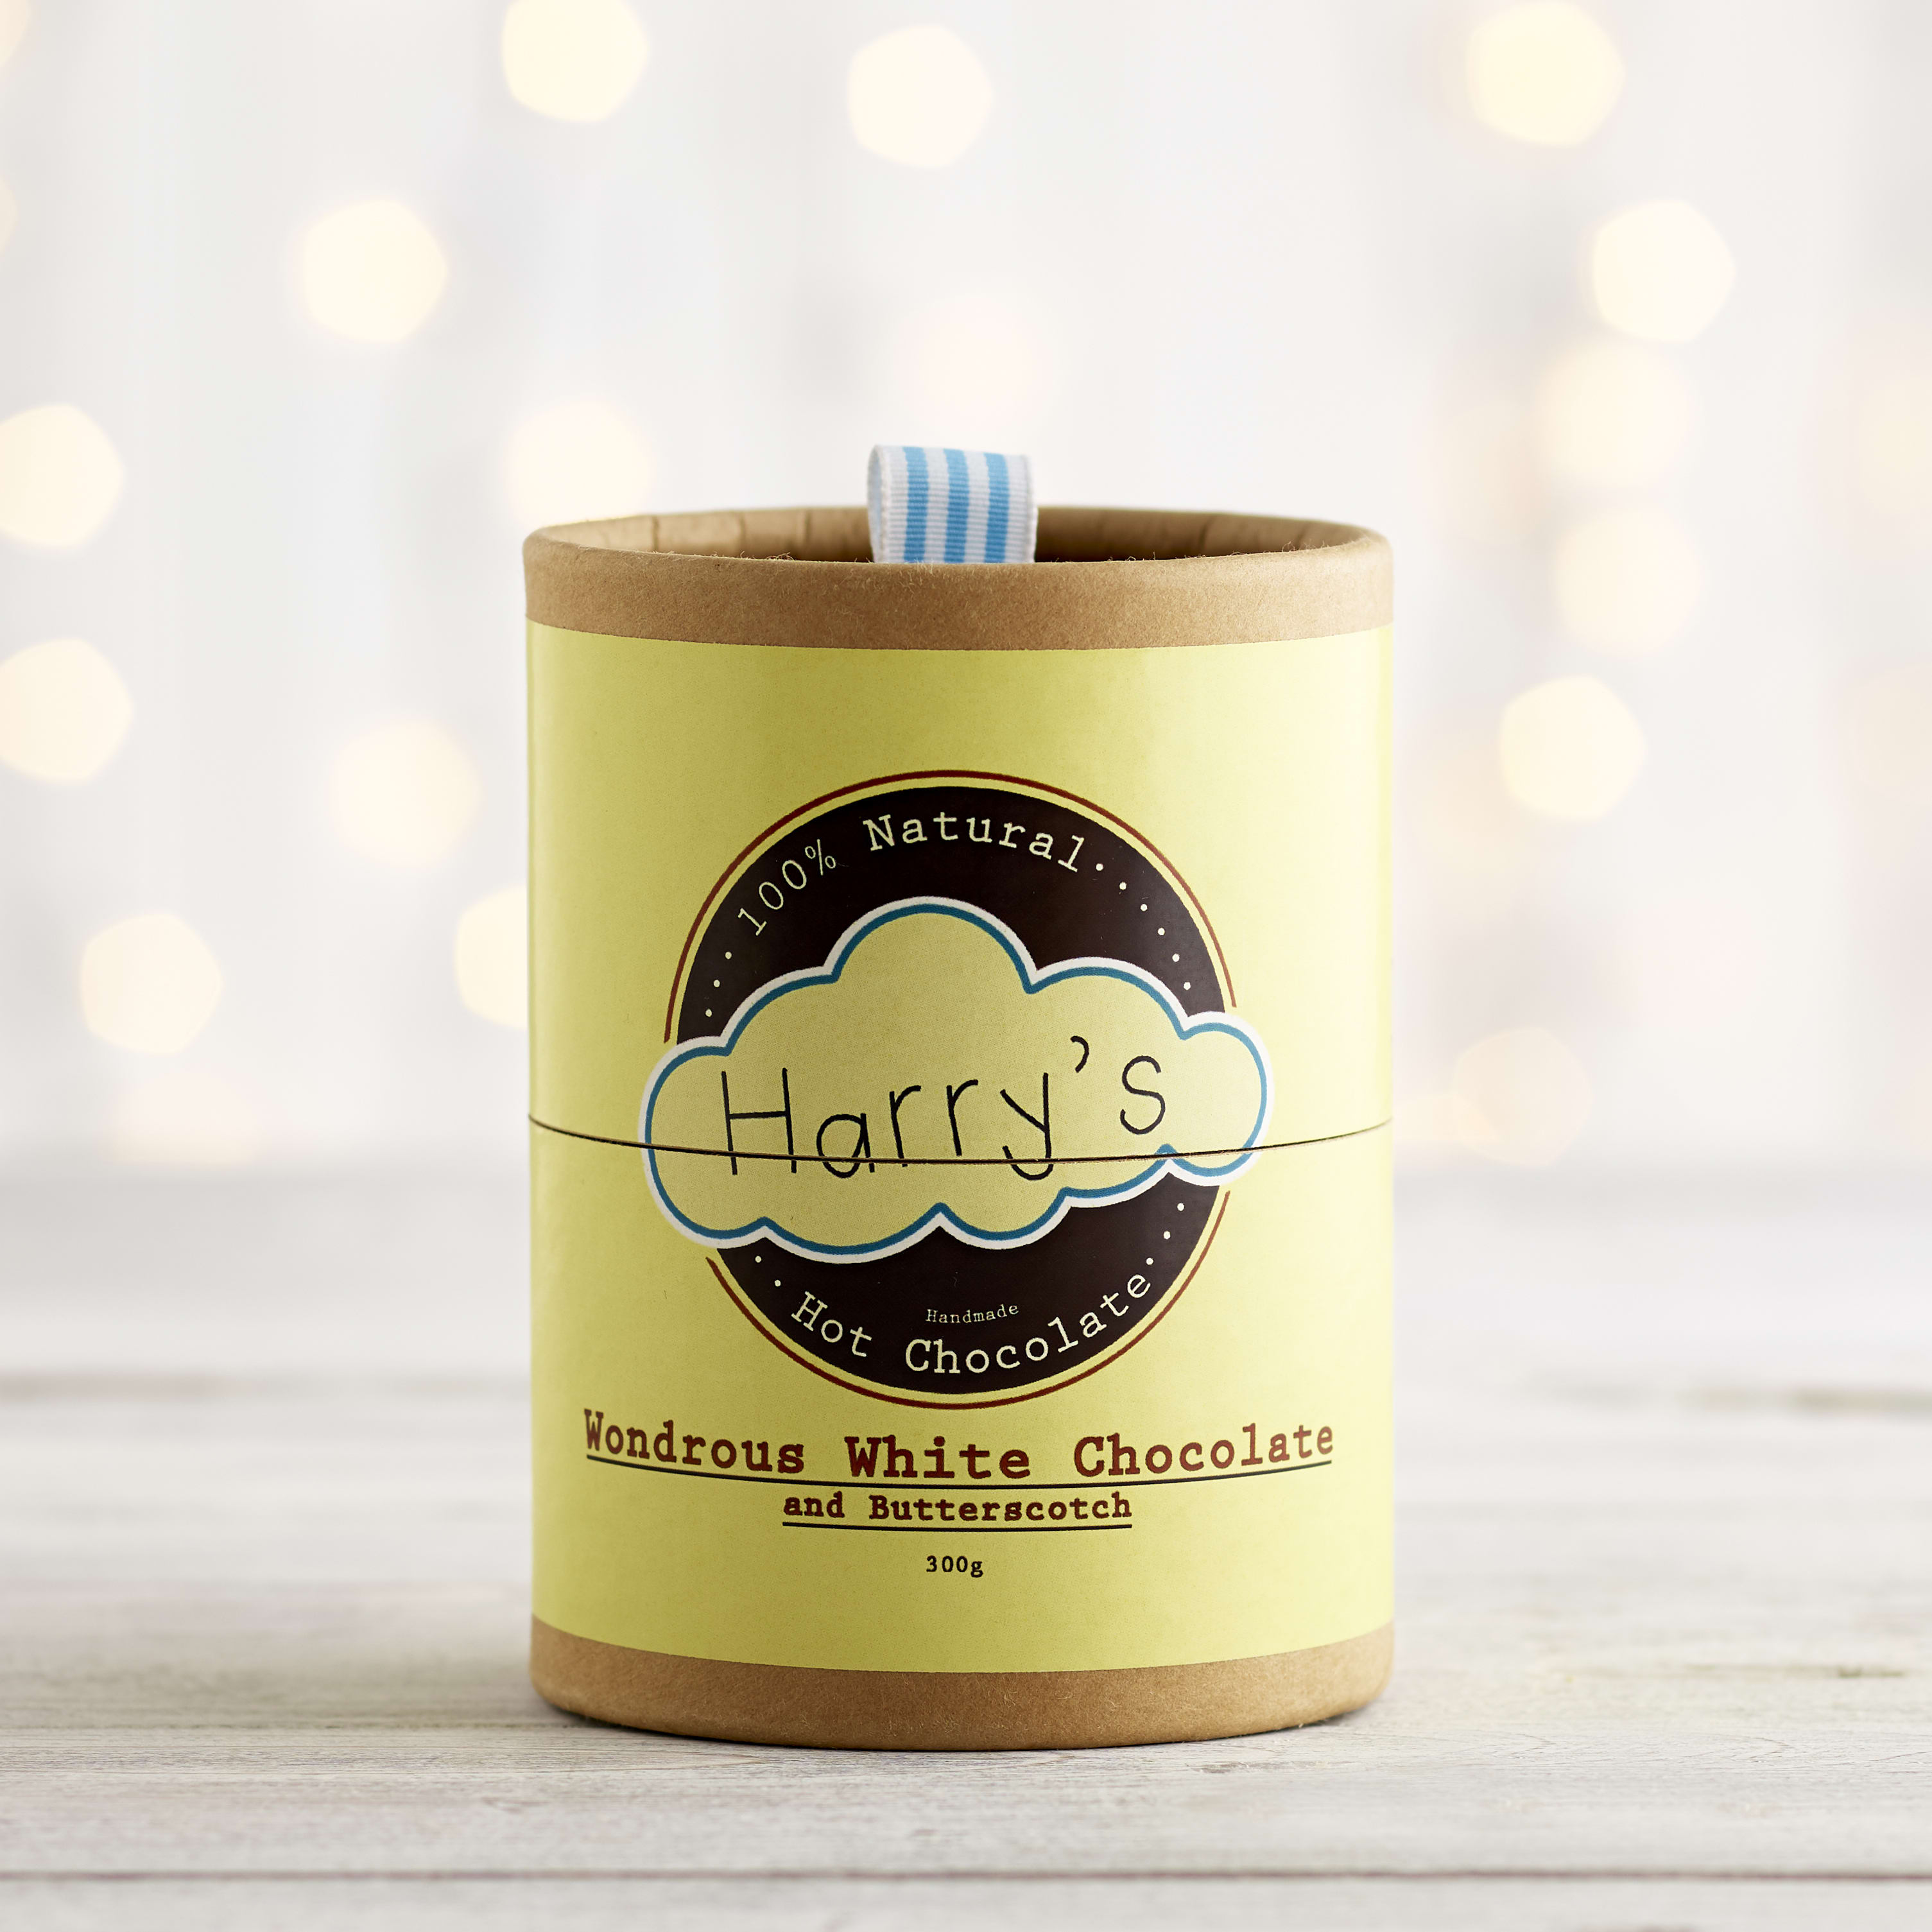 Harry's Wonderous White Chocolate & Butterscotch Hot Chocolate, 300g